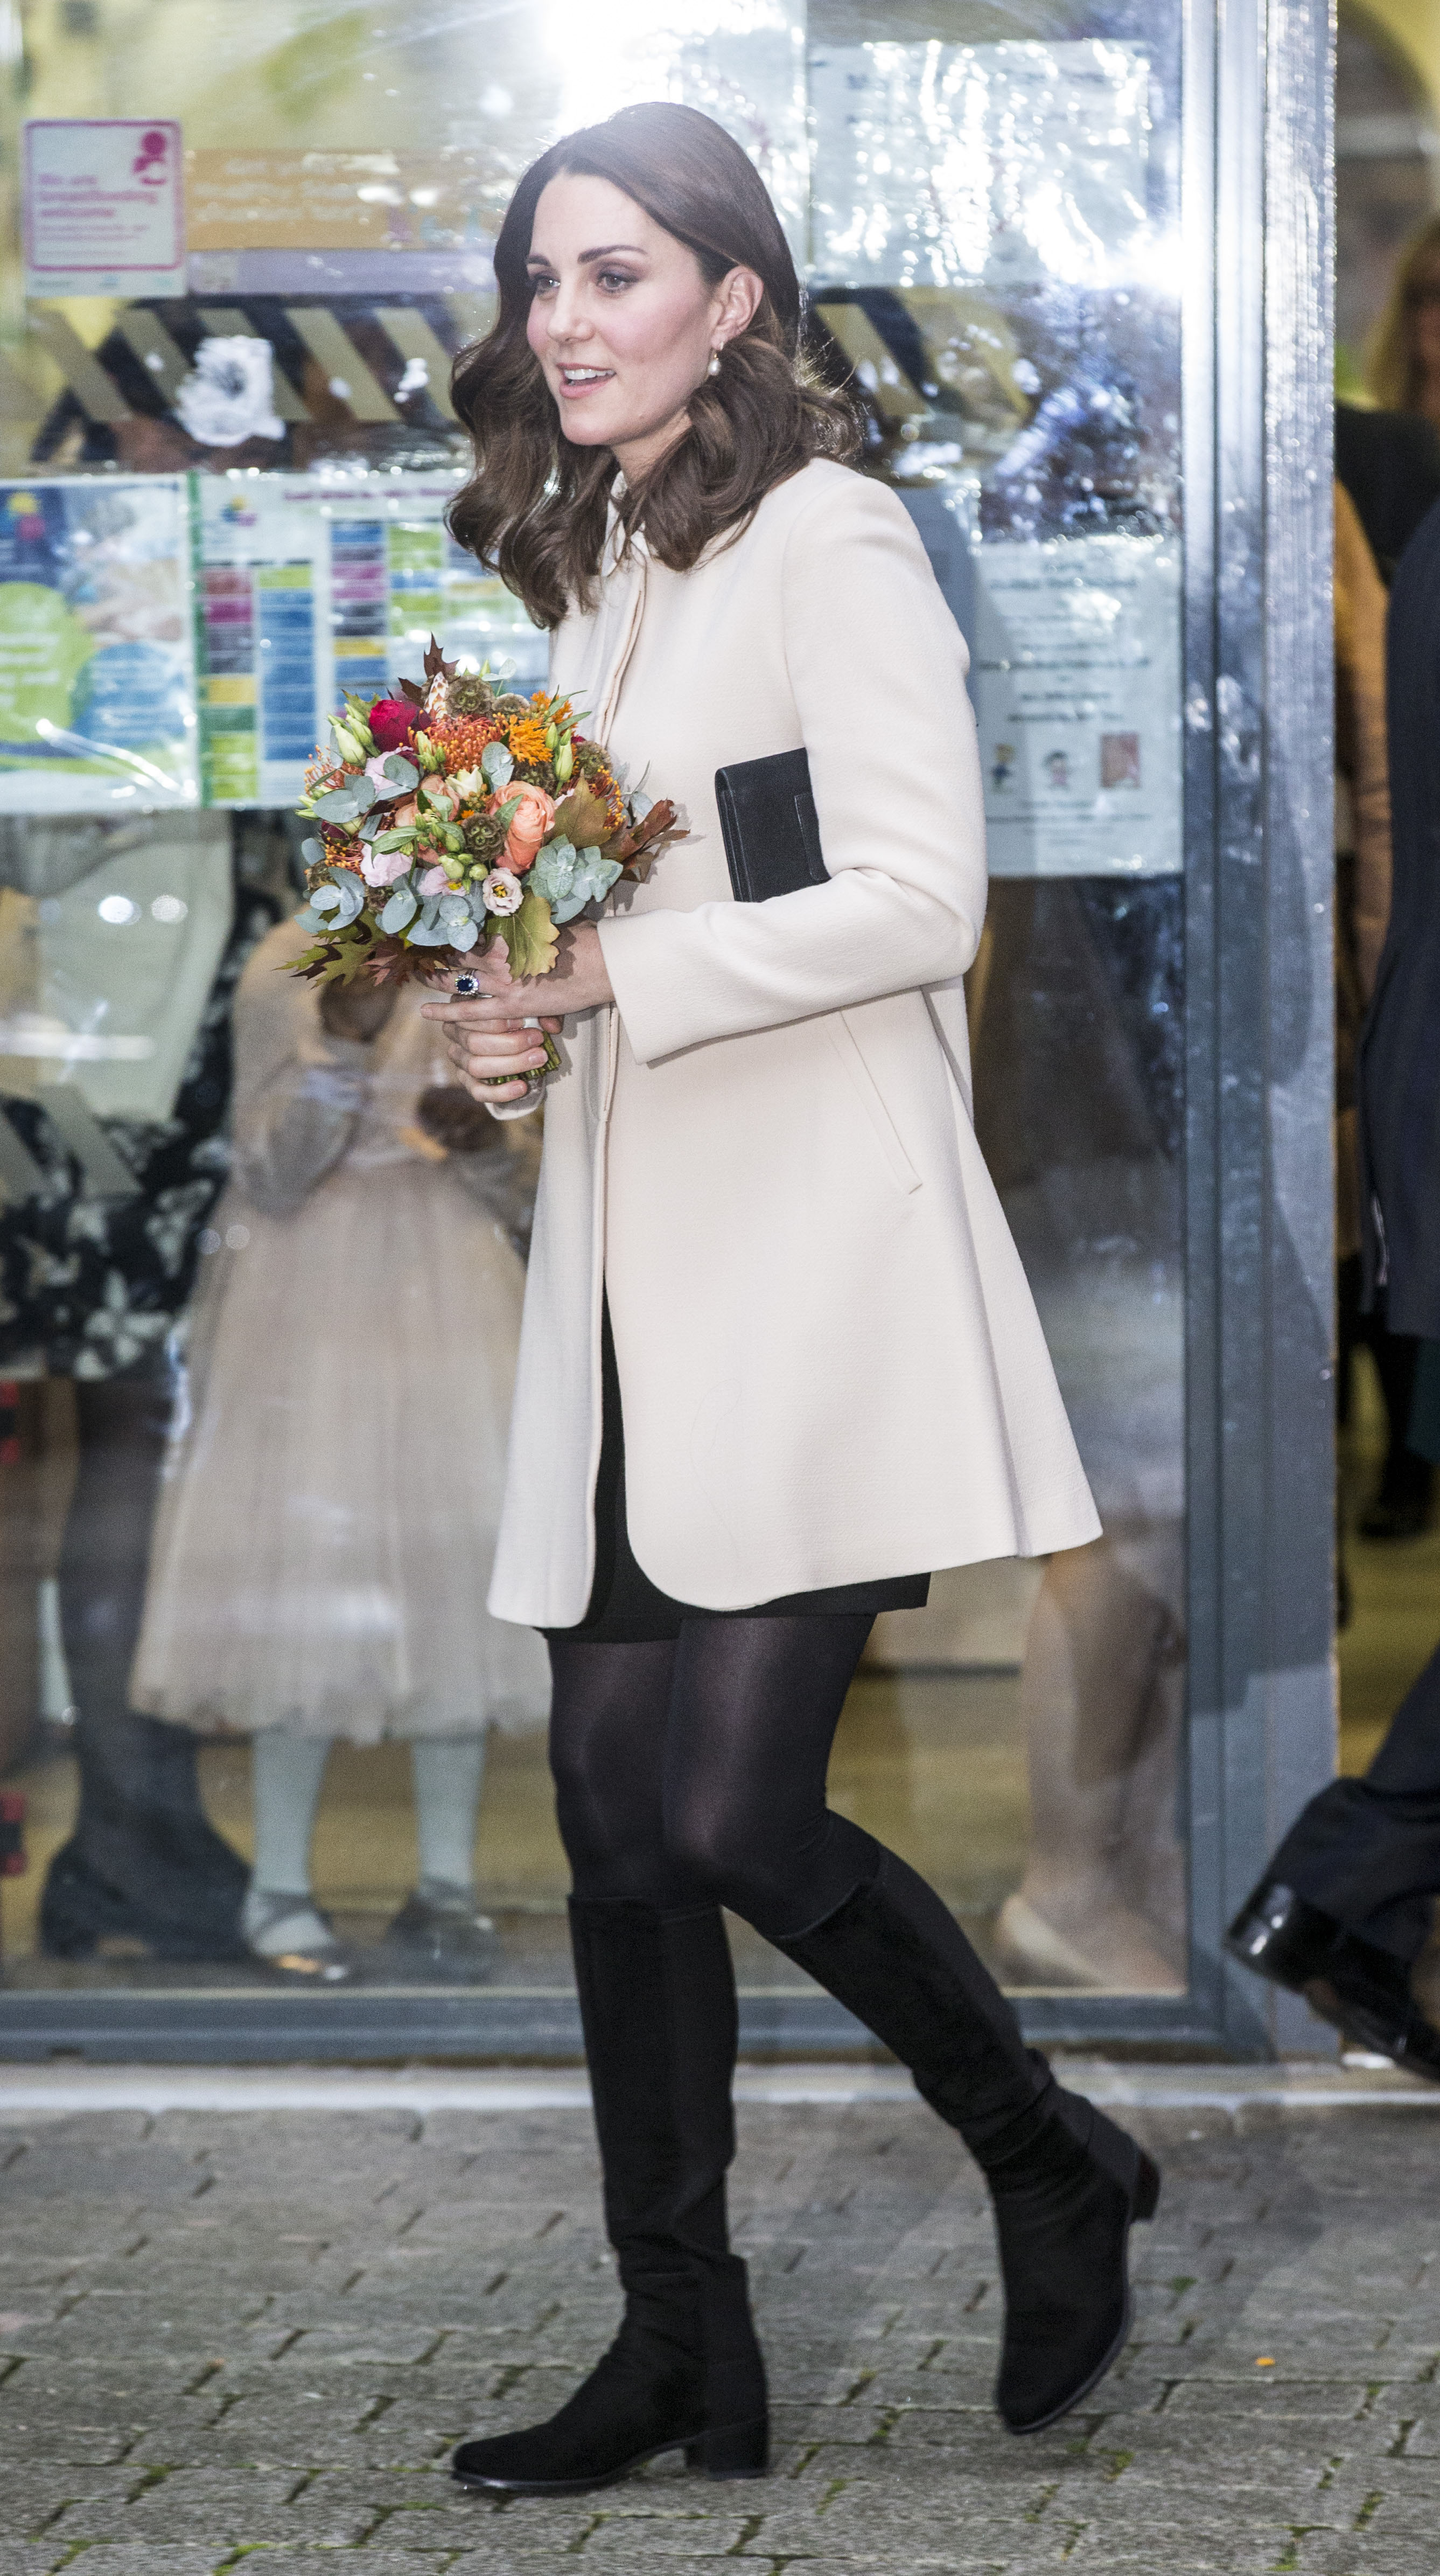 The Duchess of Cambridge visits the Hornsey Road Children's Centre to see the valuable family and parental support services which are delivered at the centre in London, UK. <P> Pictured: Duchess of Cambridge <B>Ref: SPL1622032  141117  </B><BR/> Picture by: Ian Jones / Allpix / Splash News<BR/> </P><P> <B>Splash News and Pictures</B><BR/> Los Angeles:310-821-2666<BR/> New York:212-619-2666<BR/> London:870-934-2666<BR/> <span id=